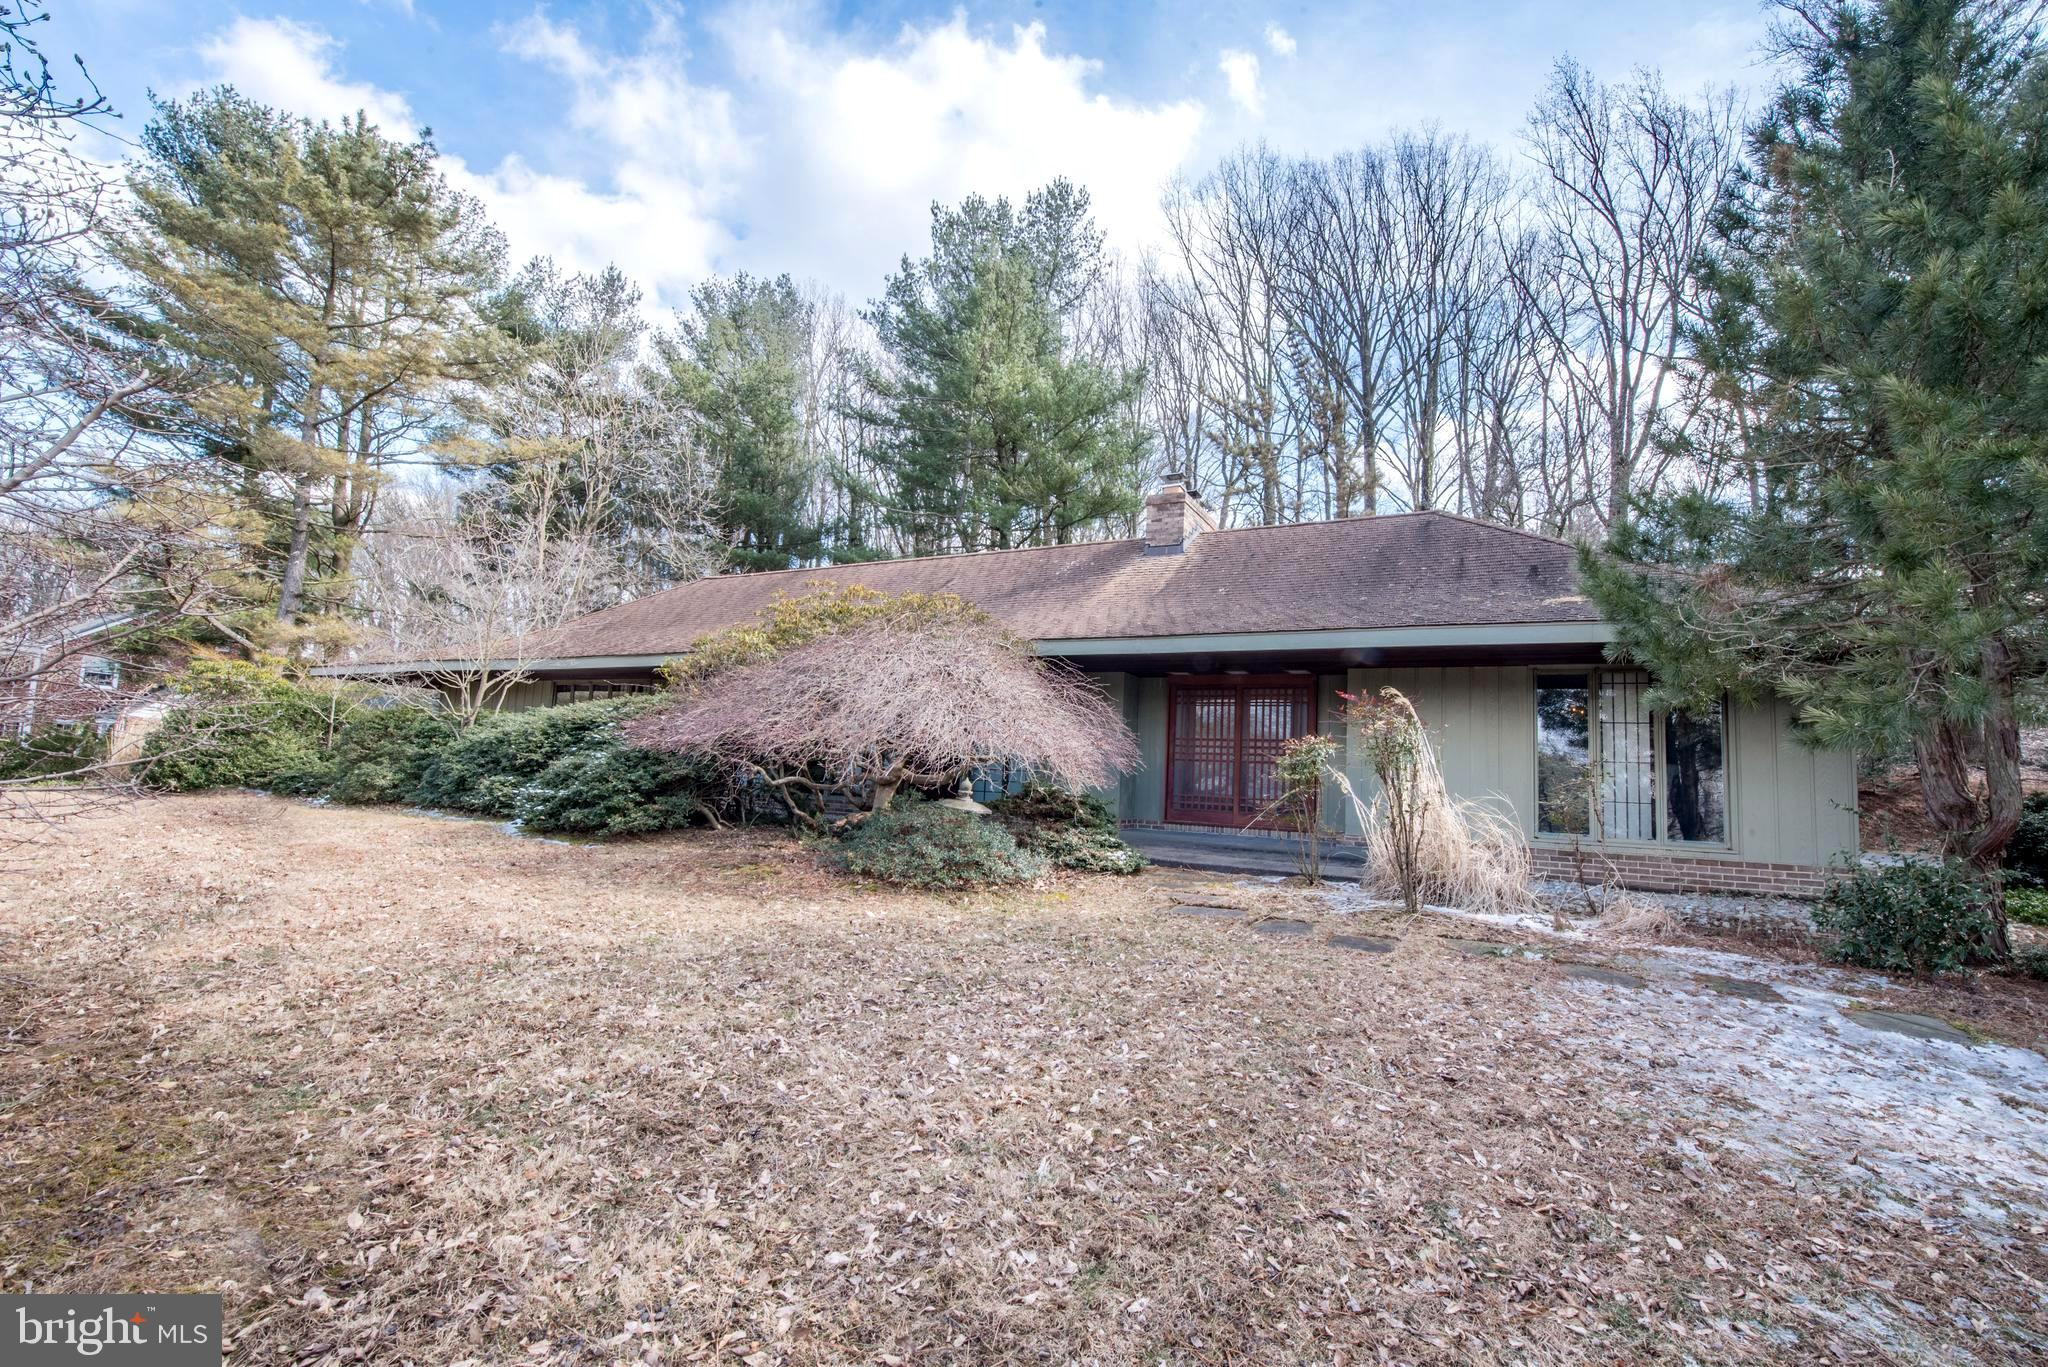 1205 DOVES COVE ROAD, TOWSON, MD 21286